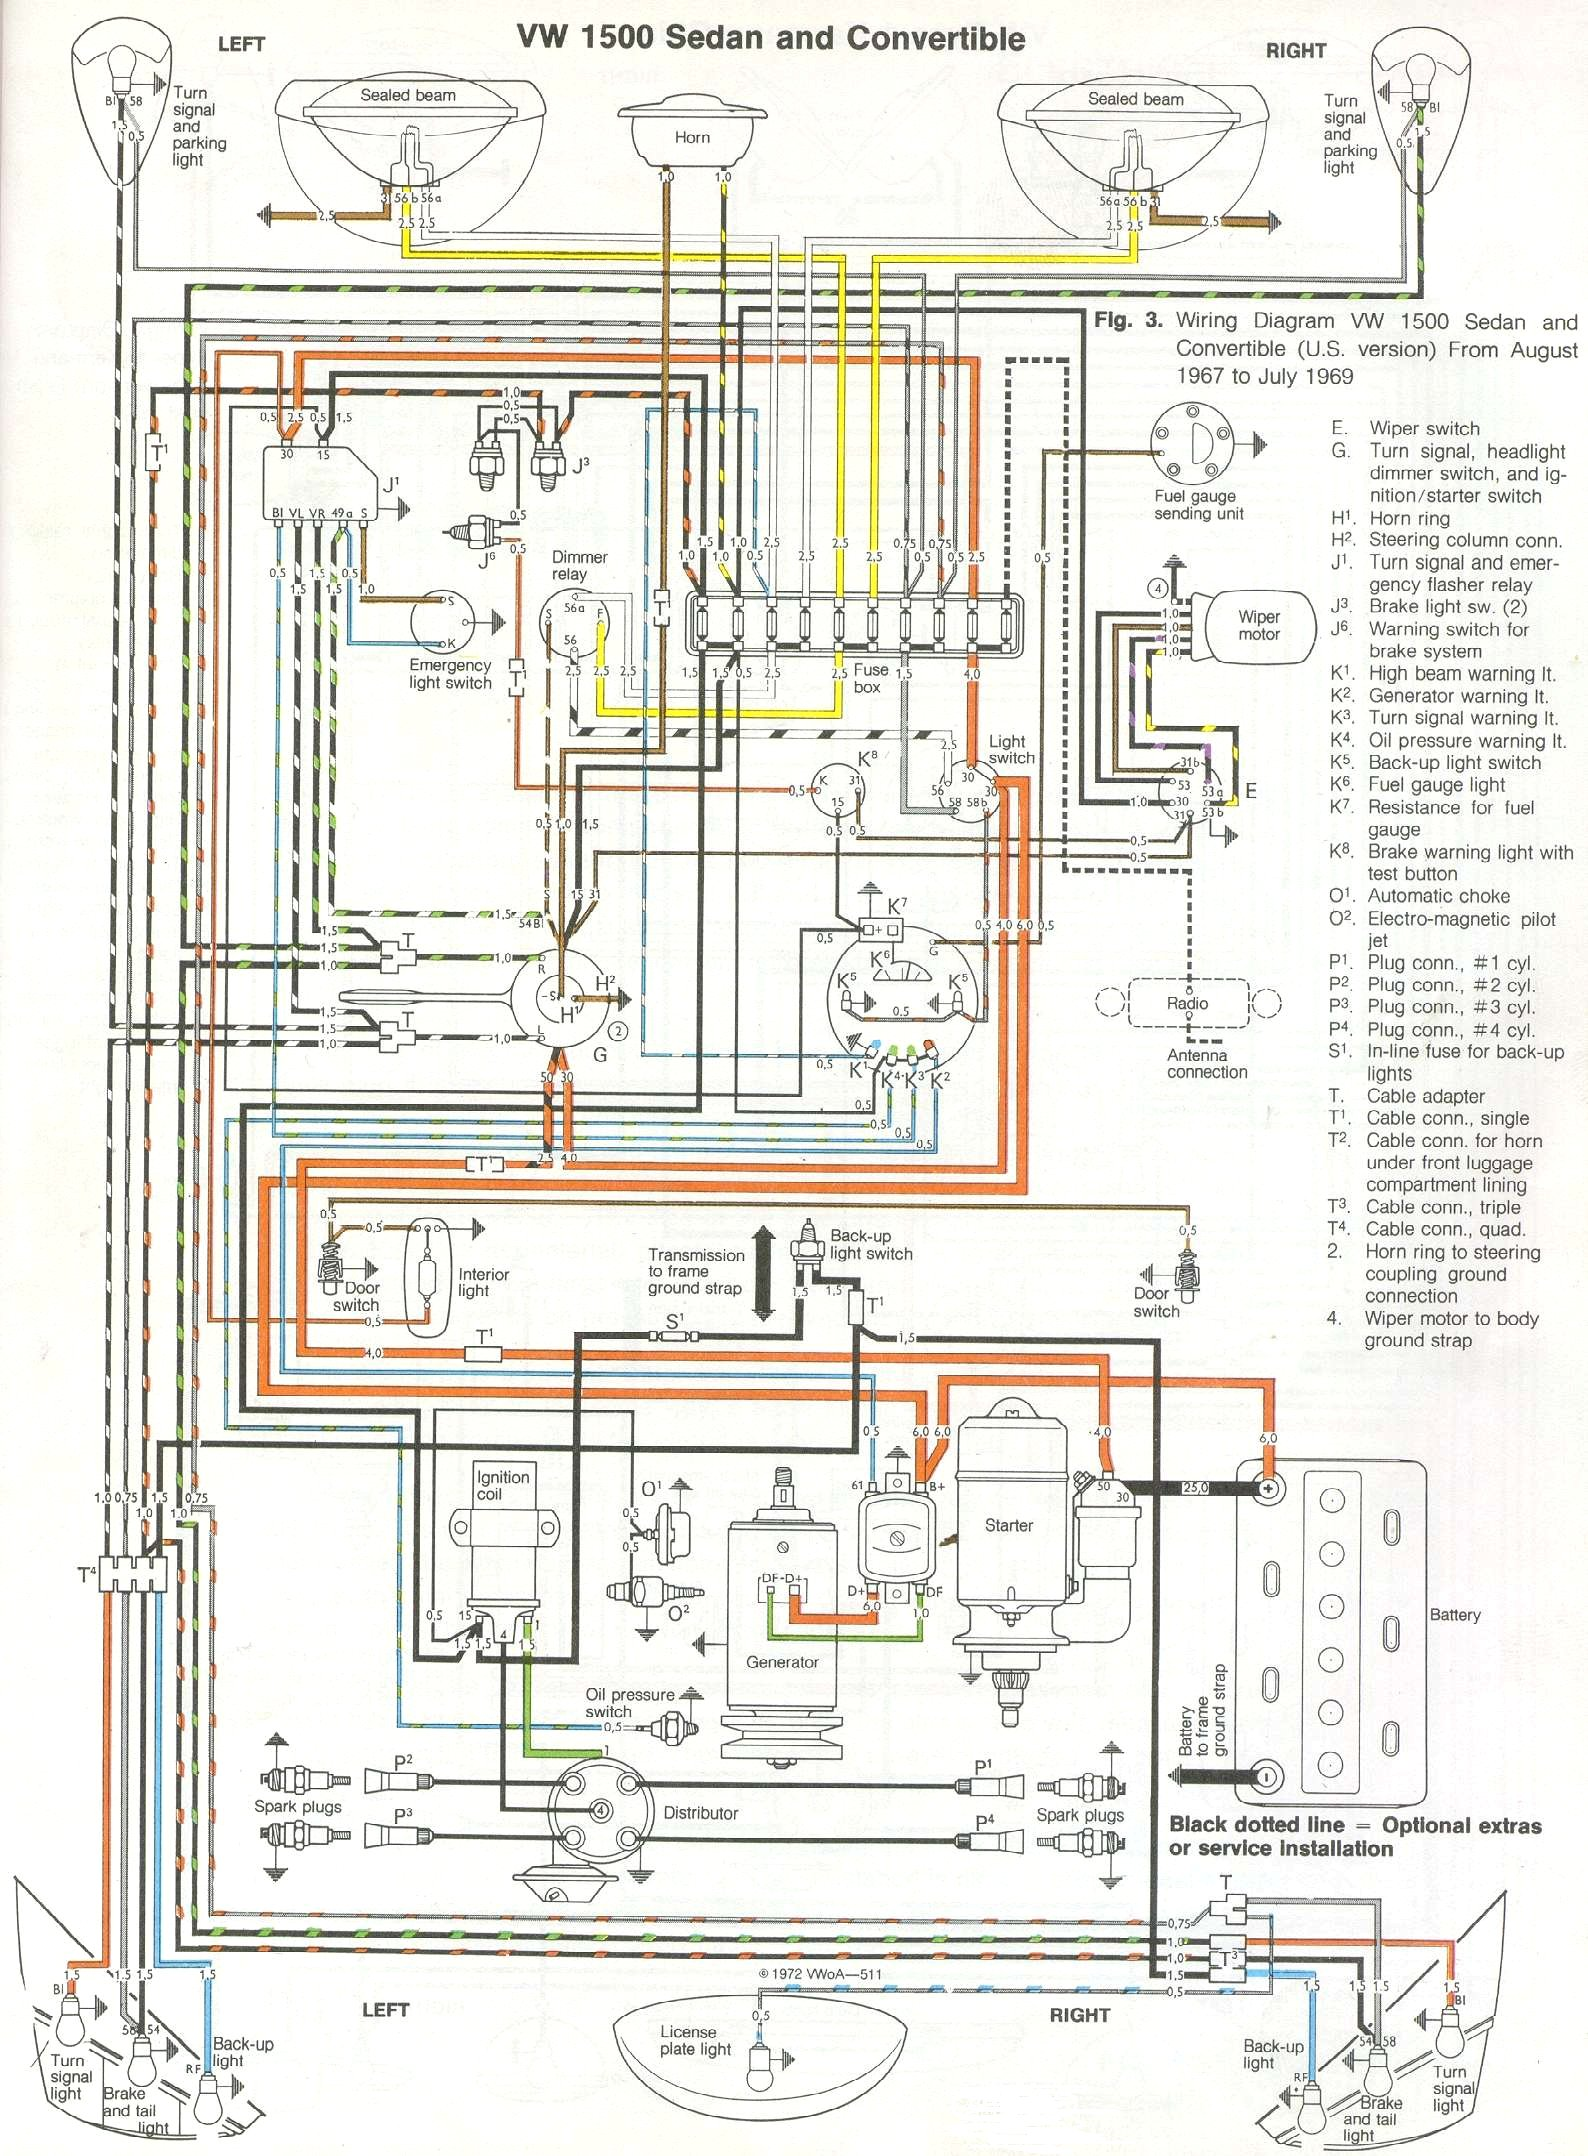 Melted Fuse Box 2002 Vw Beetle Diagram Explained Wiring Diagrams Co